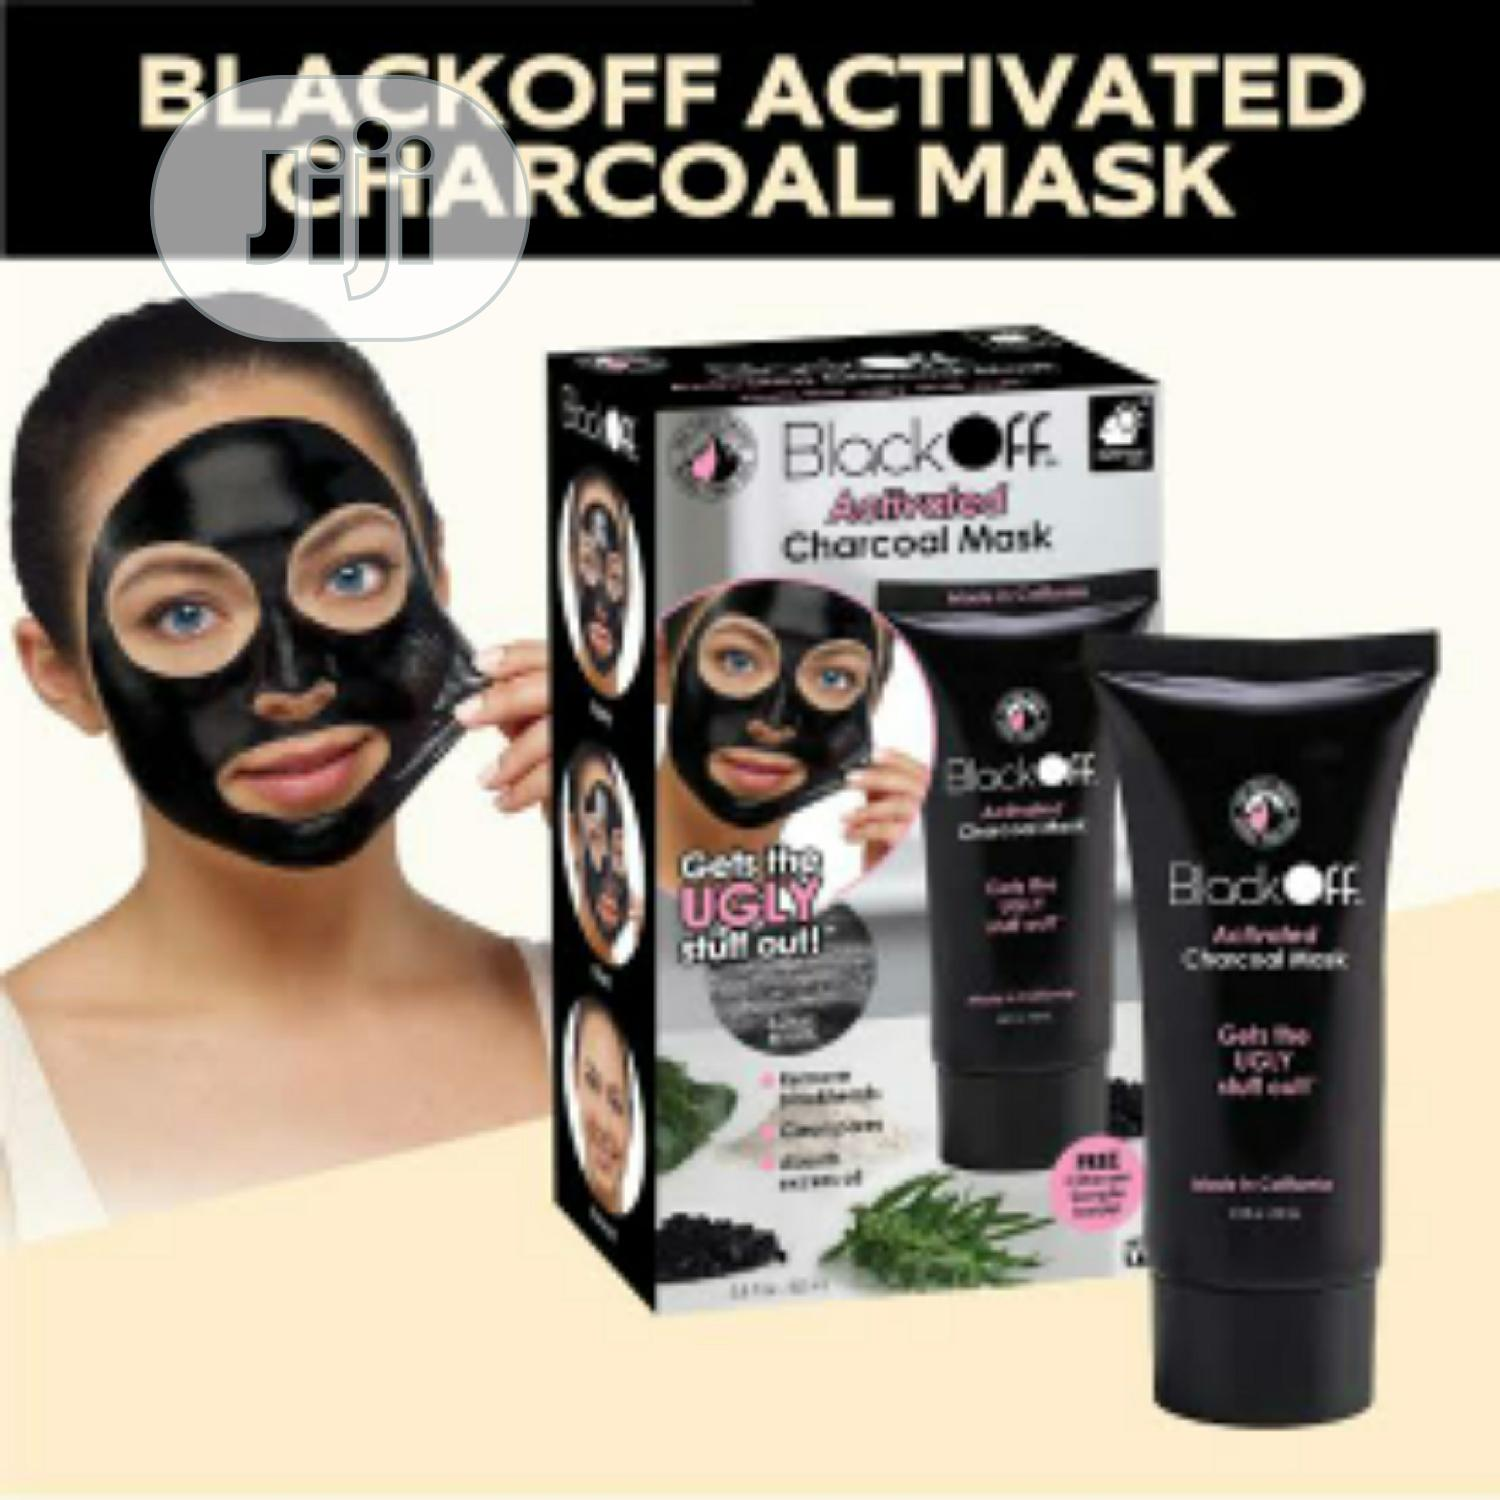 Blackoff Activated Charcoal Mask